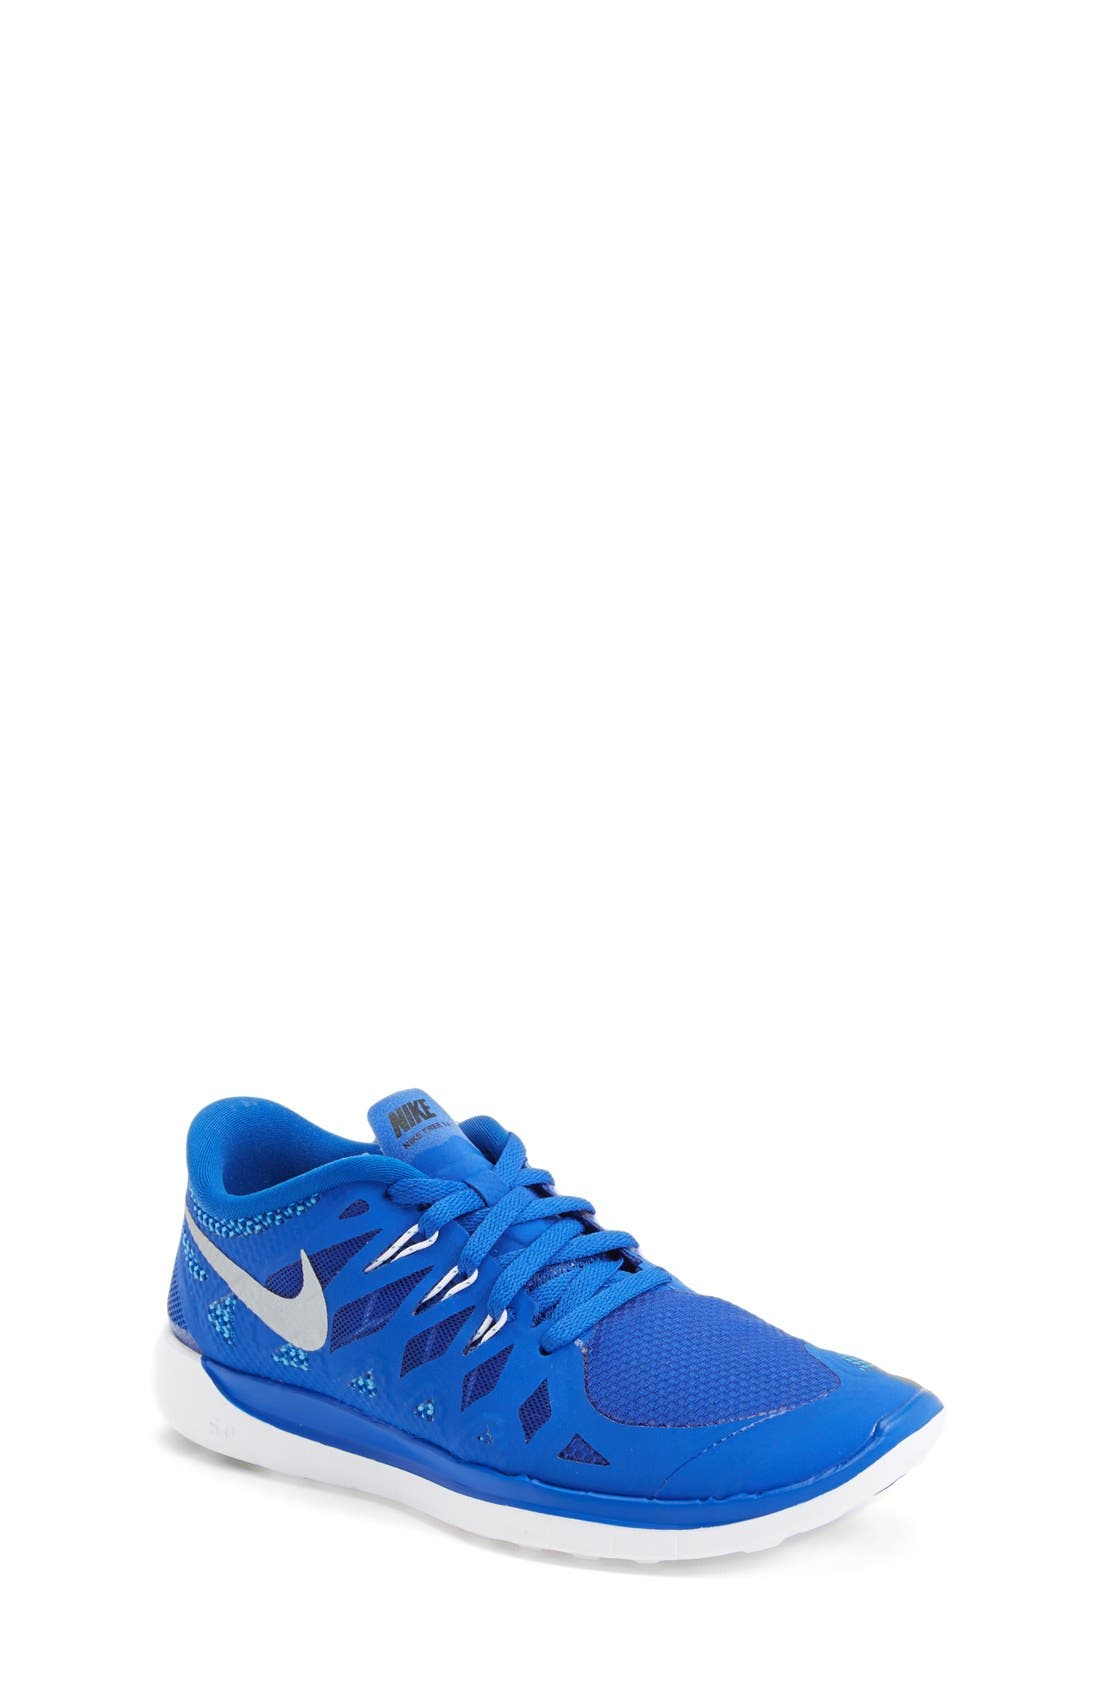 Main Image - Nike 'Free 5.0' Running Shoe (Big Kids)